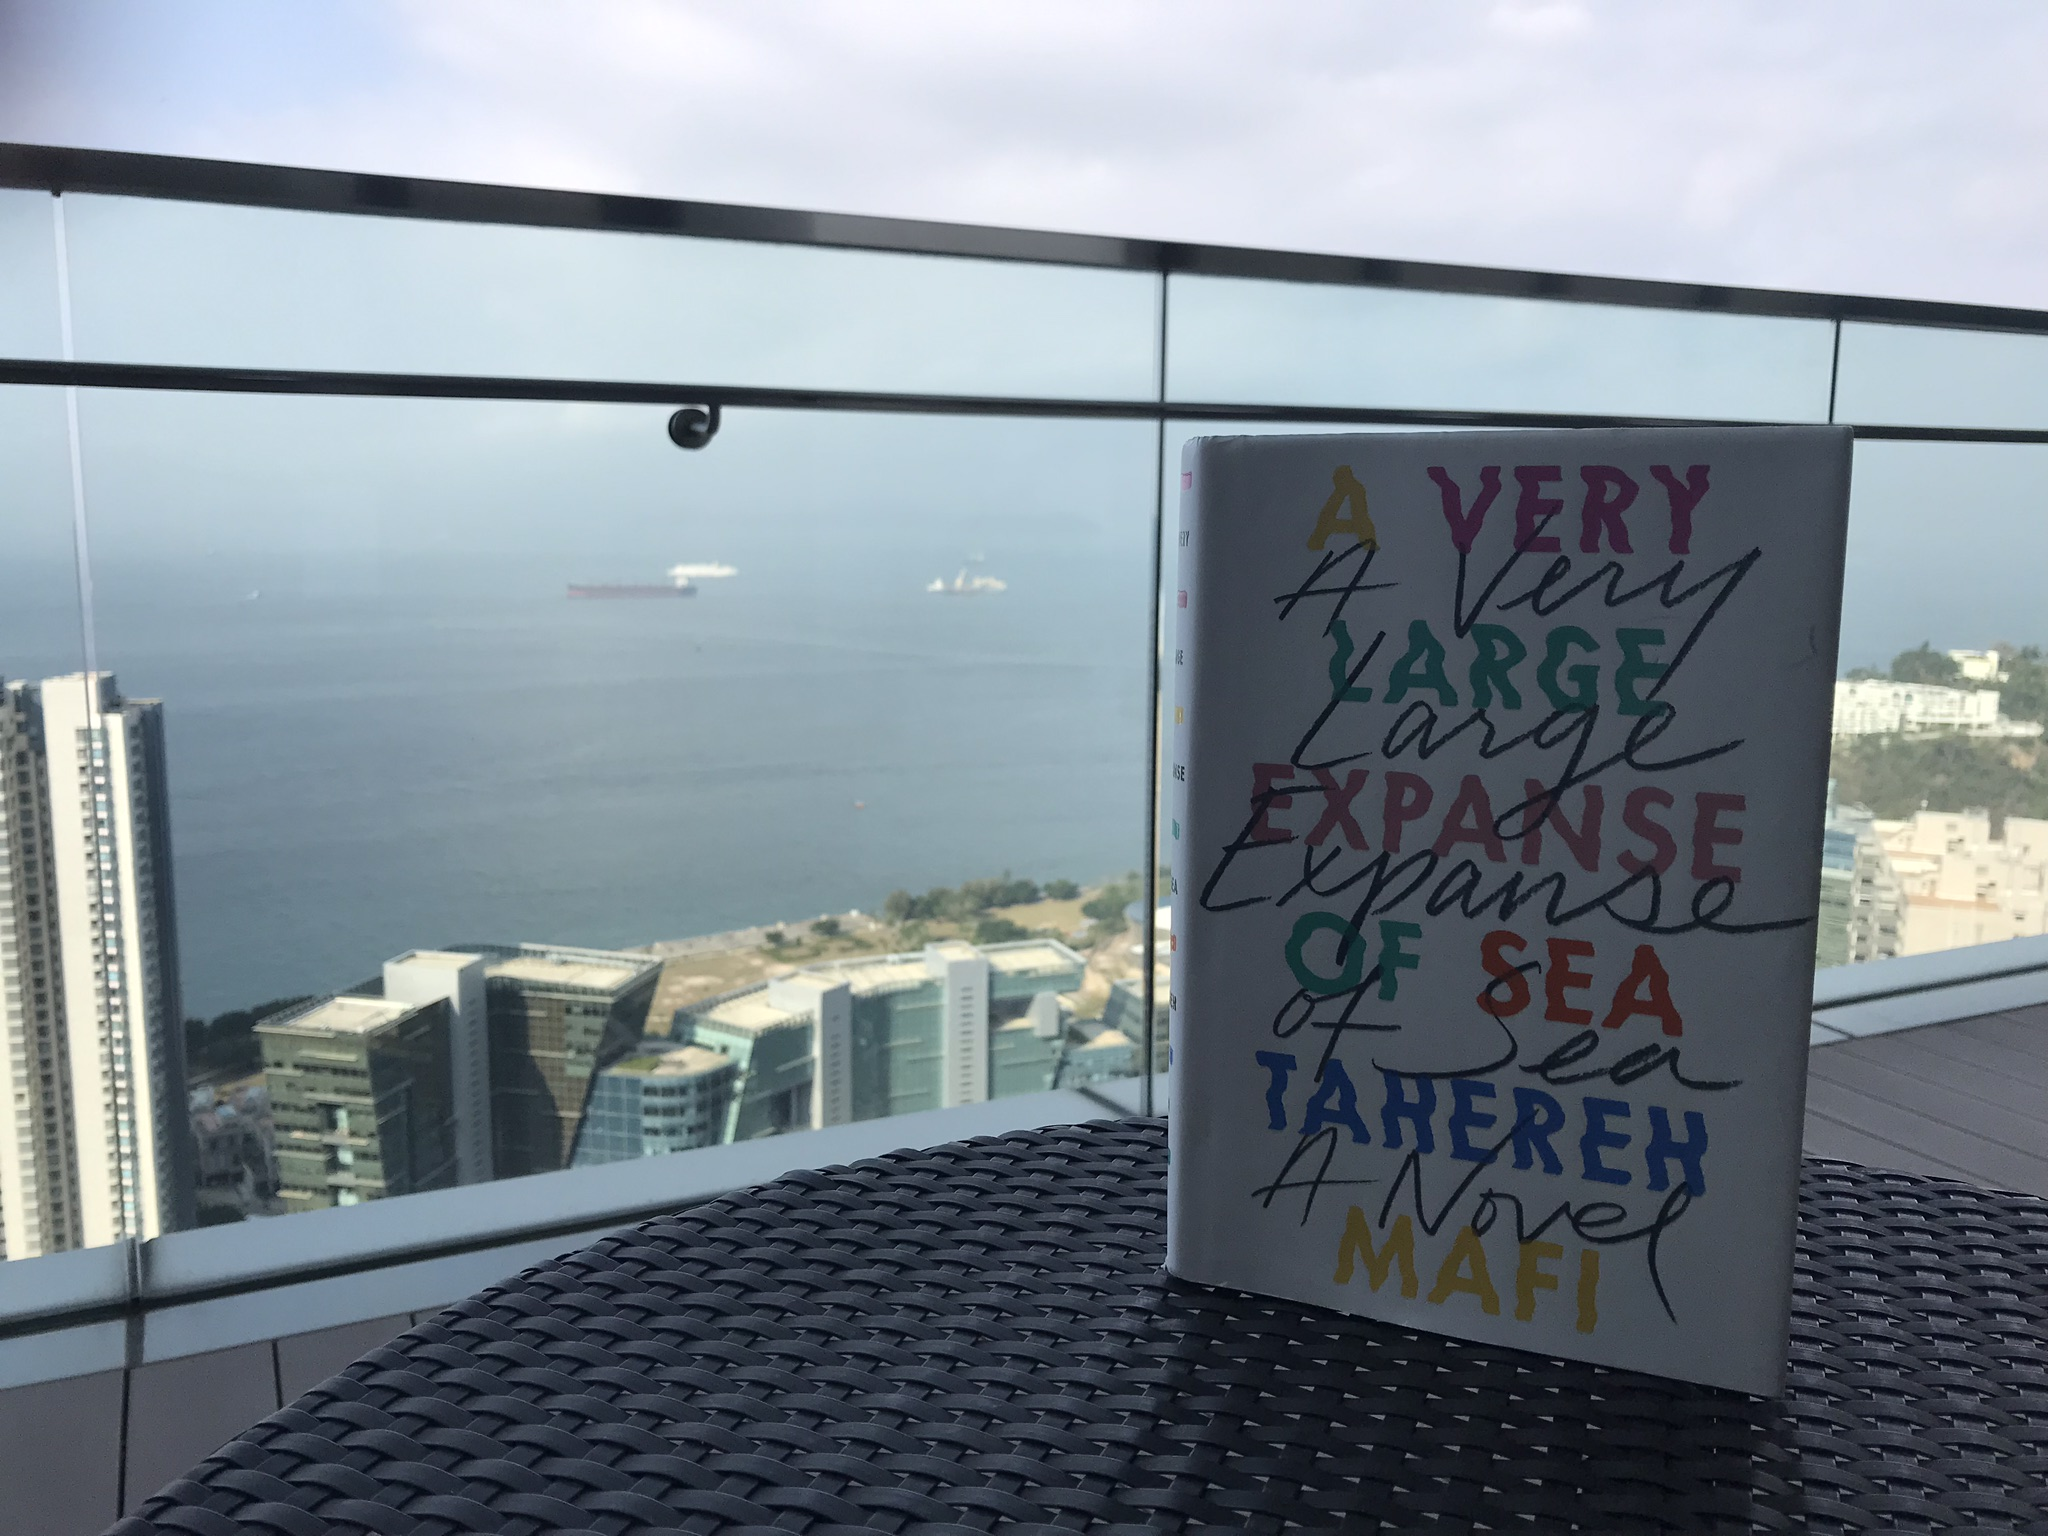 Tahereh Mafi's A Very Large Expanse of Sea pictured with the South China Sea in the background. Top picture taken by my dad, both pictured in Hong Kong.